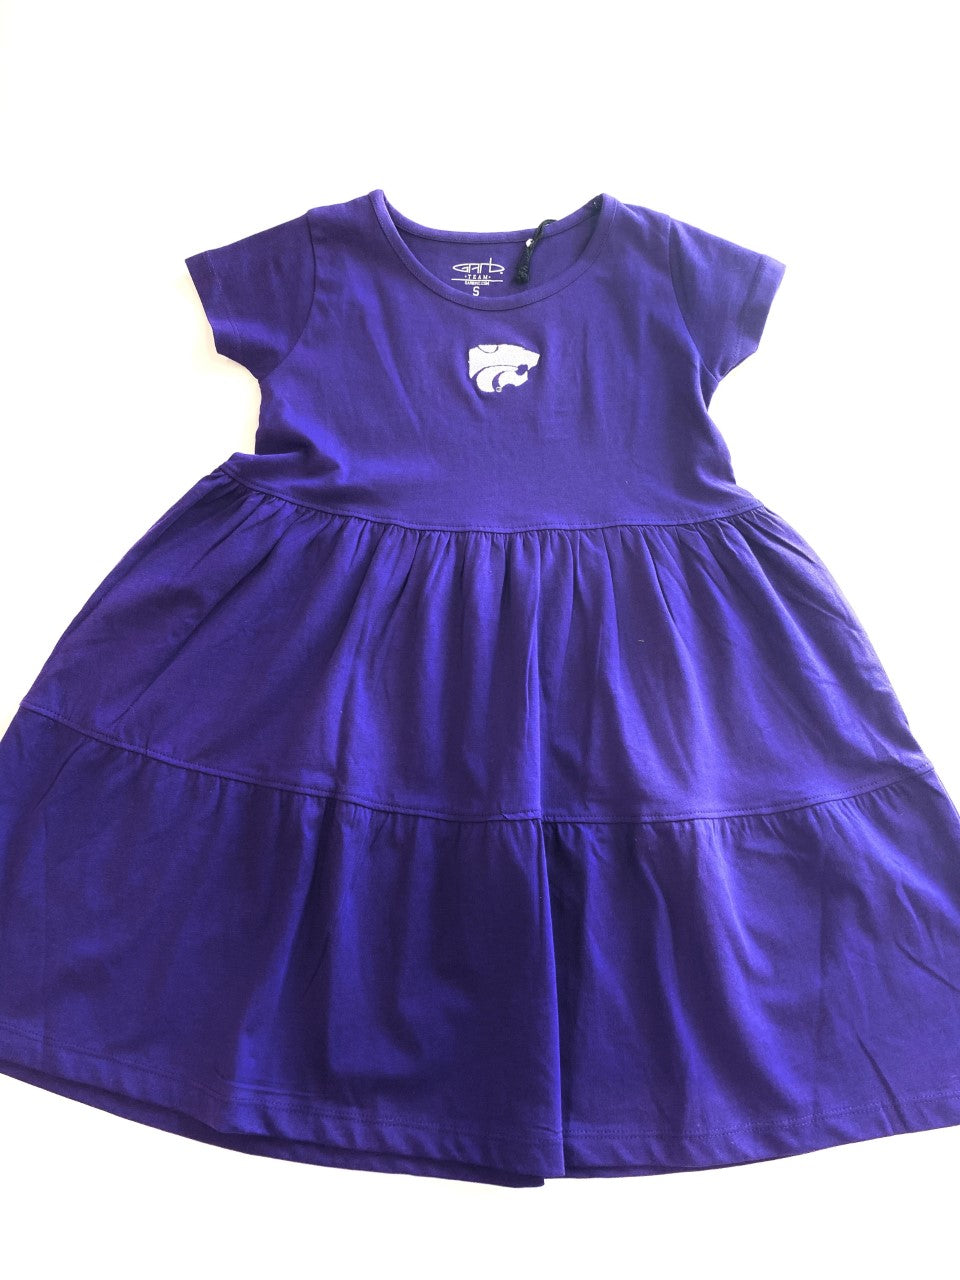 Kansas State Wildcats Youth Girls Fia Dress - 2008634